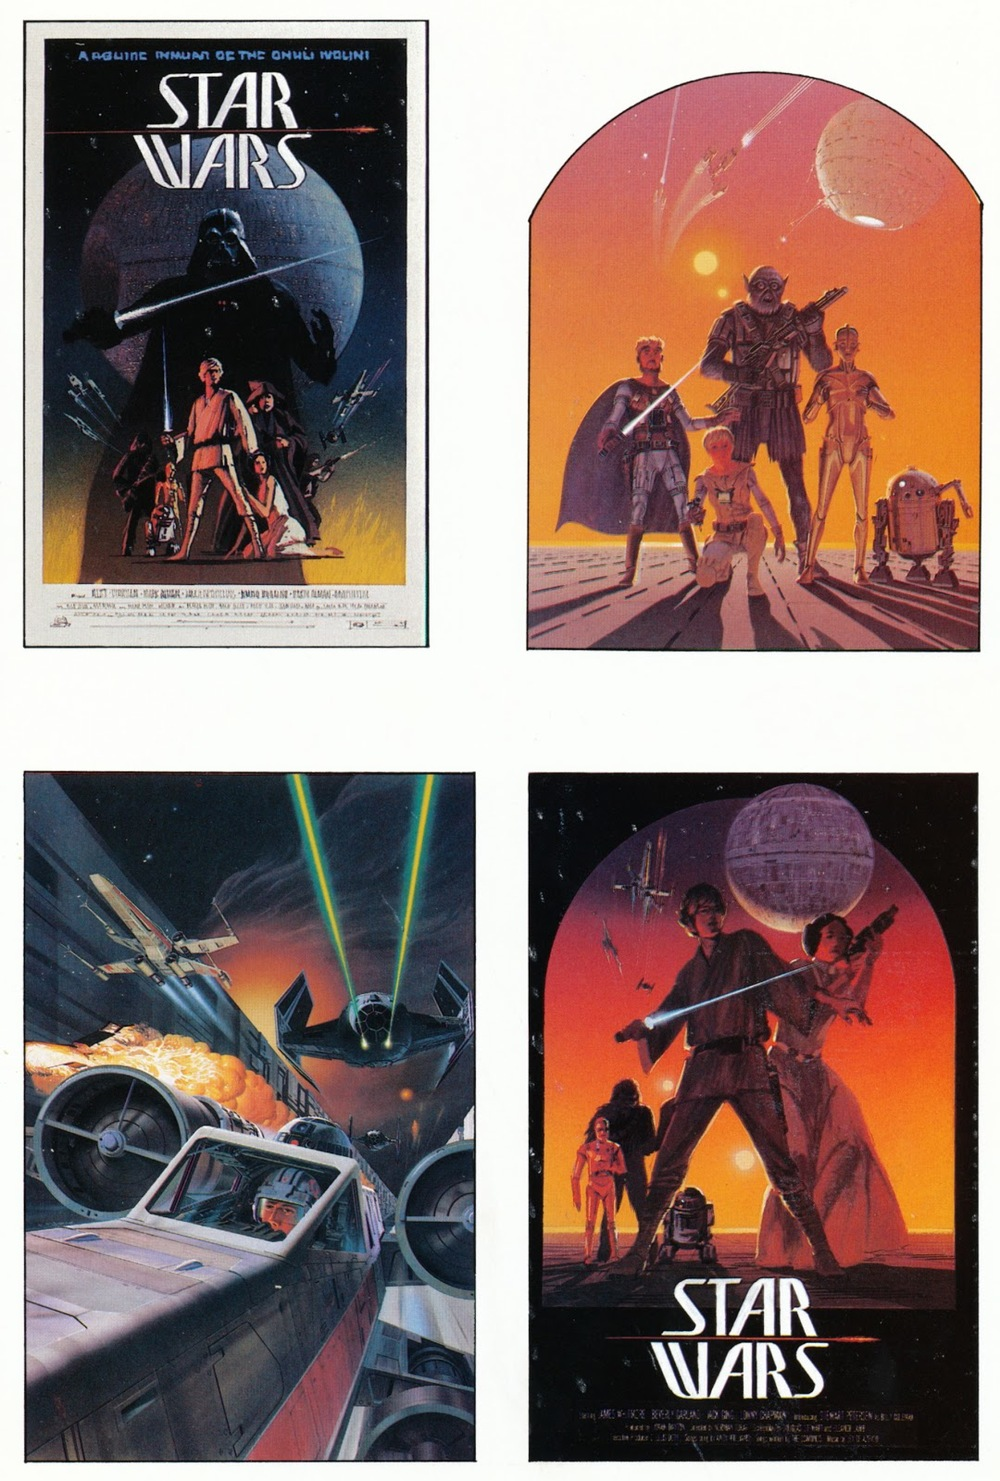 Star Wars 02 Ralph McQuarrie Art of Star Wars.jpg